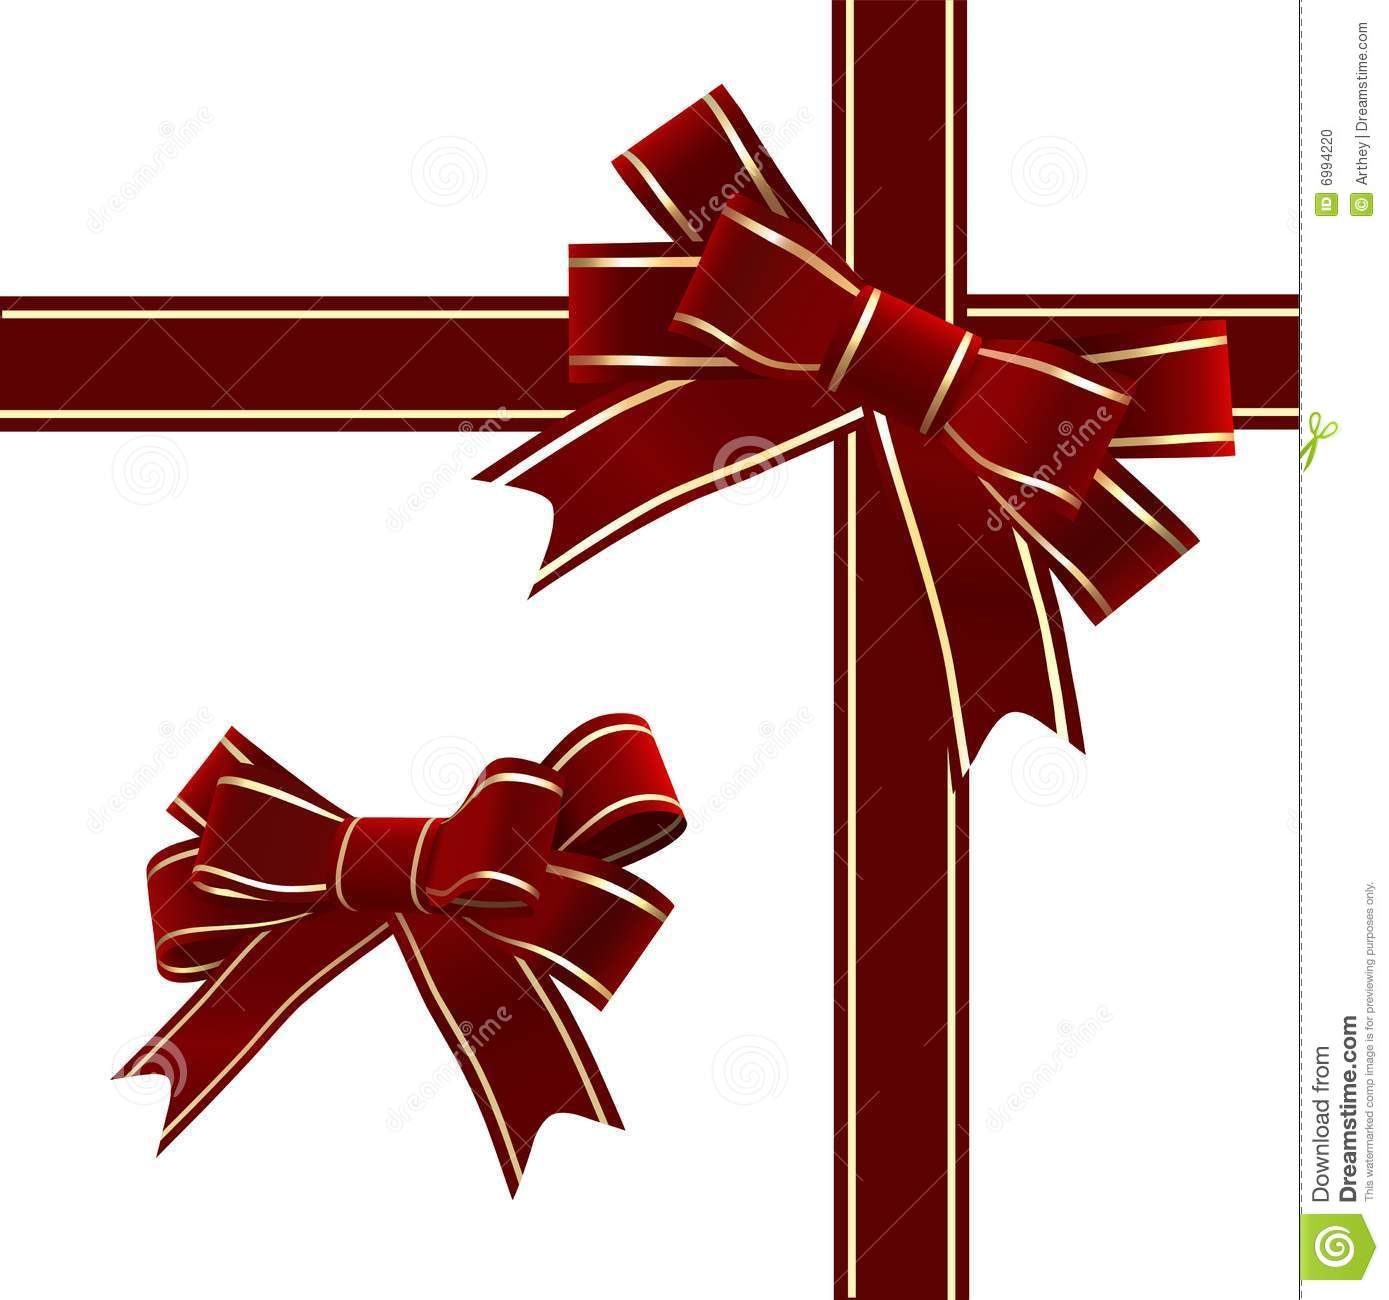 ribbons and bows Shop hallmark for ribbons and bows to add the final touch to your gift wrap assortment includes satin, grosgrain ribbon and twine in many colors and patterns.